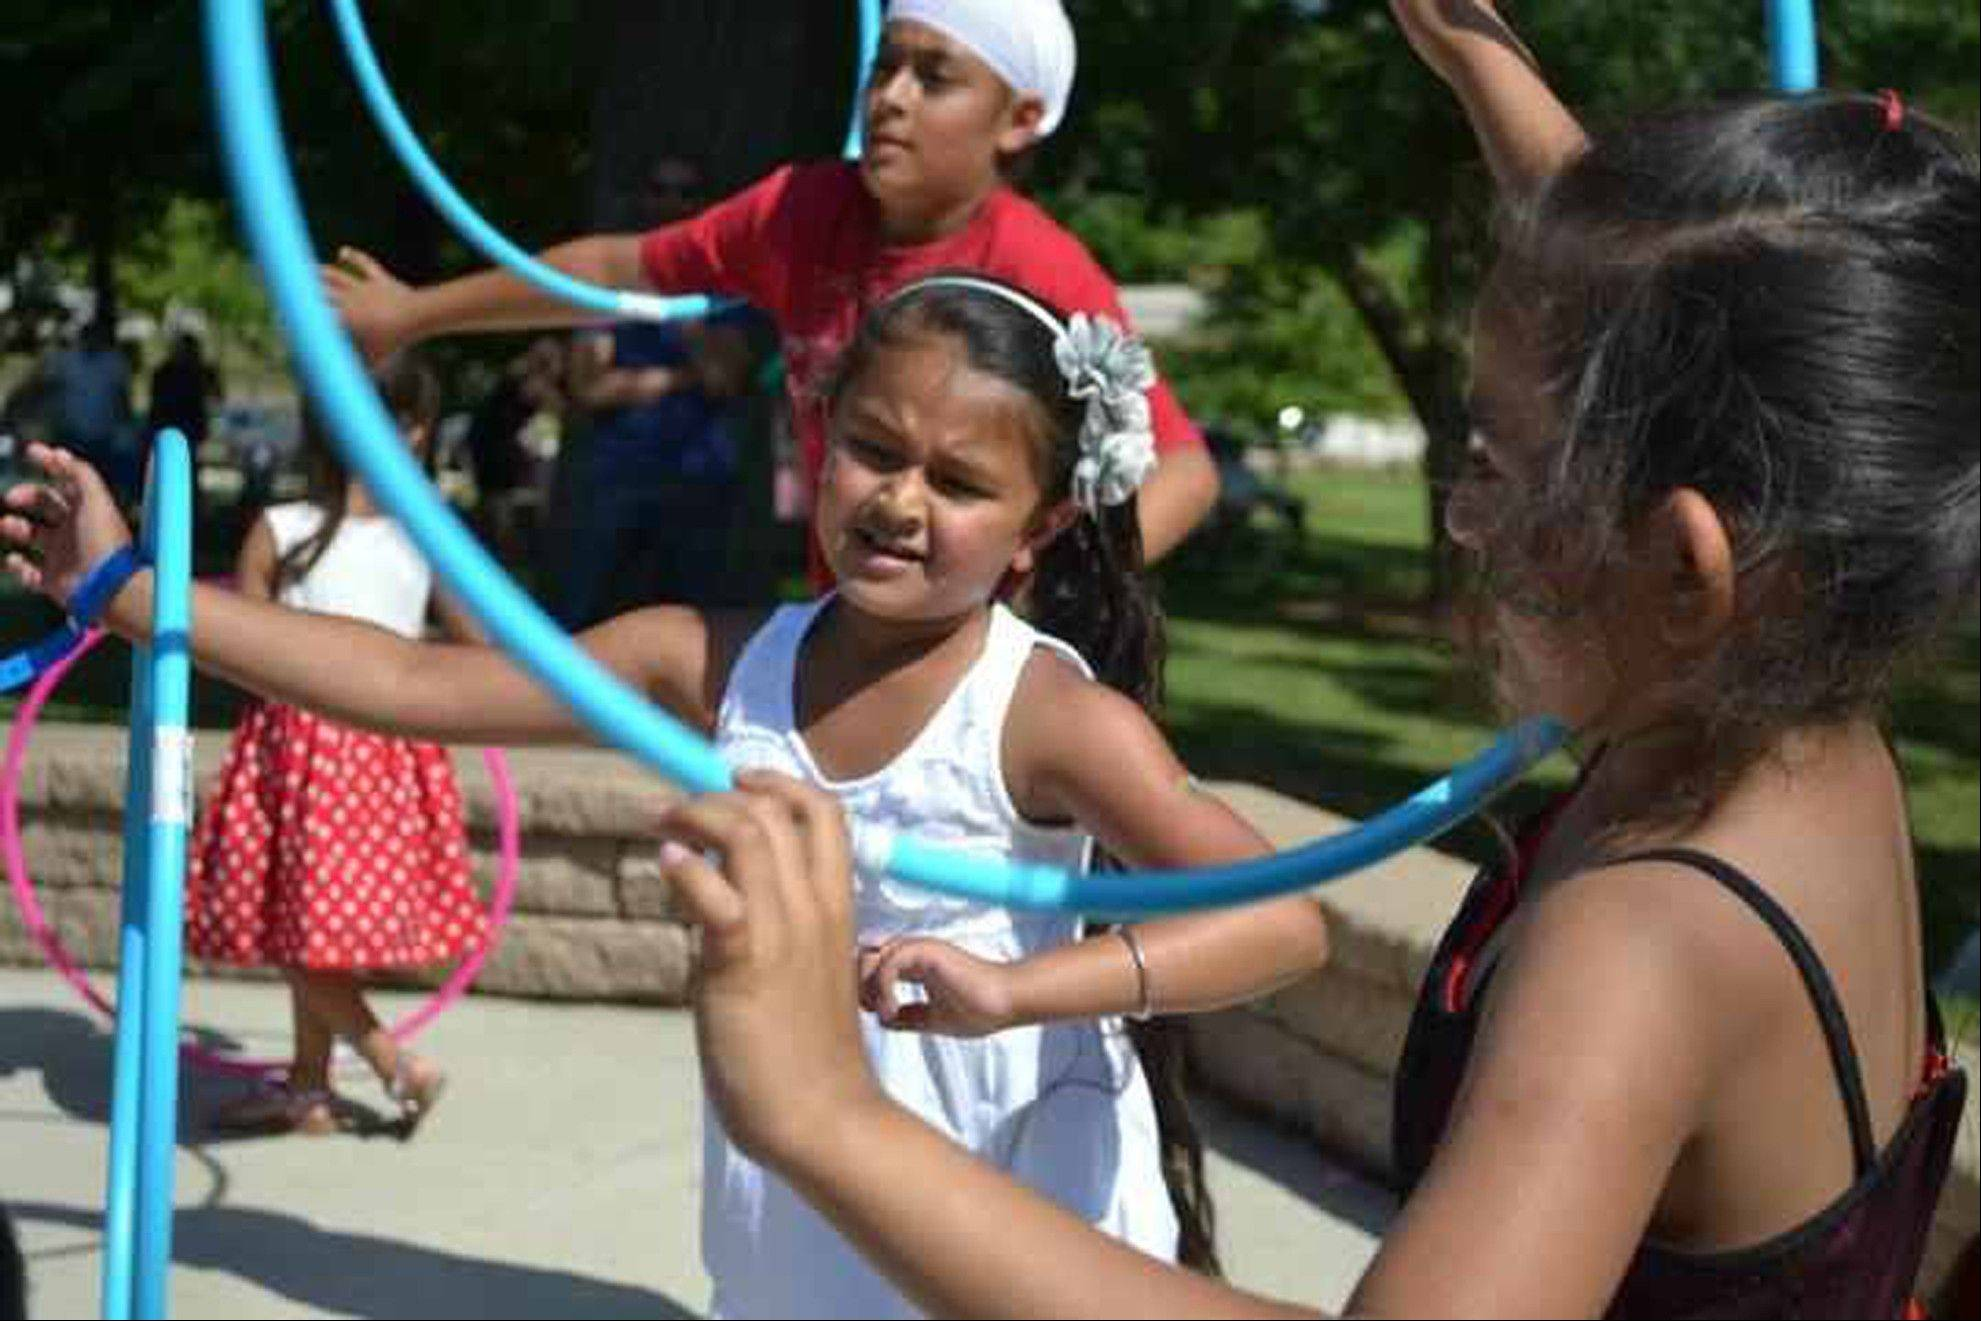 Hula hooping games and other fun tasks are a cool ways for party guests to win prizes that they can take home as favors.